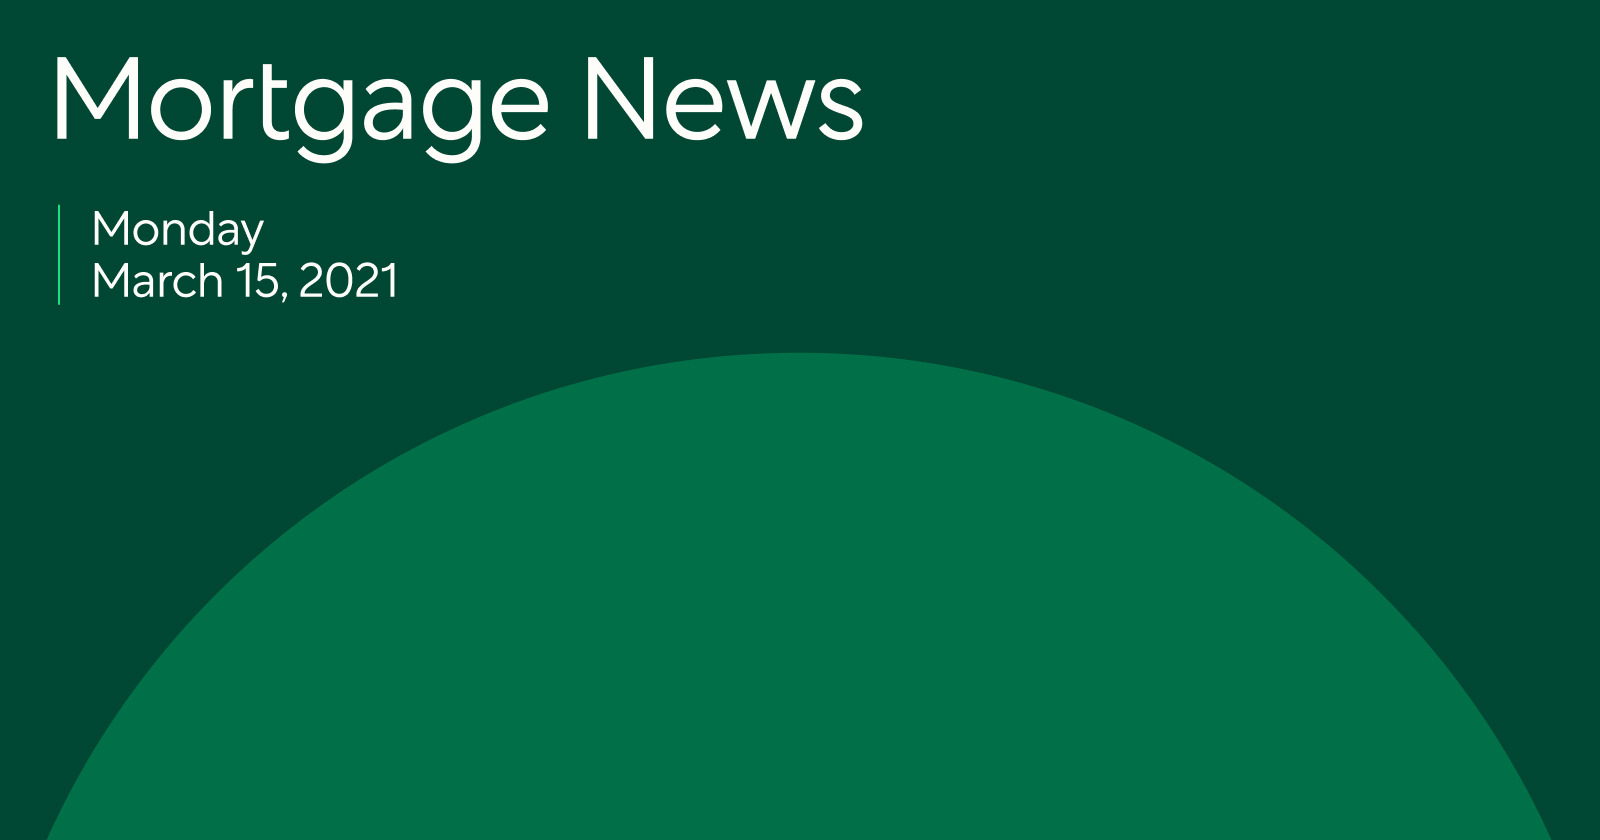 Mortgage News 3/15/2021: Home Equity Gains Are Averaging 26K Per Owner